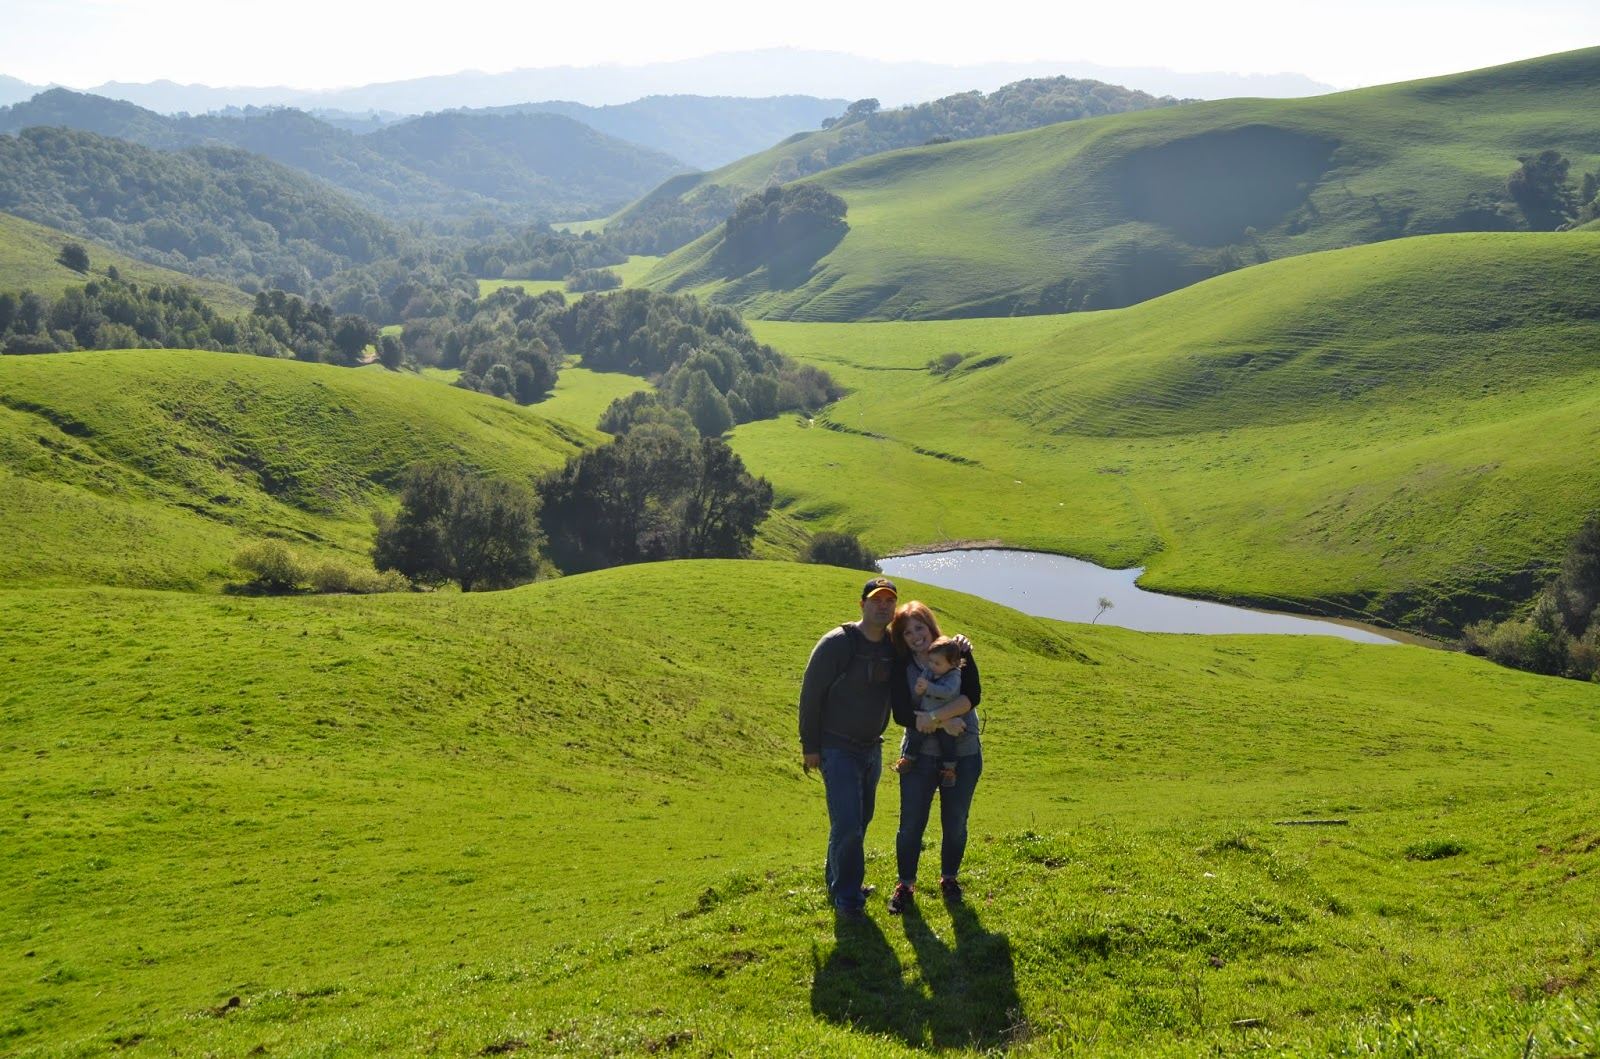 Hiking and running in Briones Regional Park